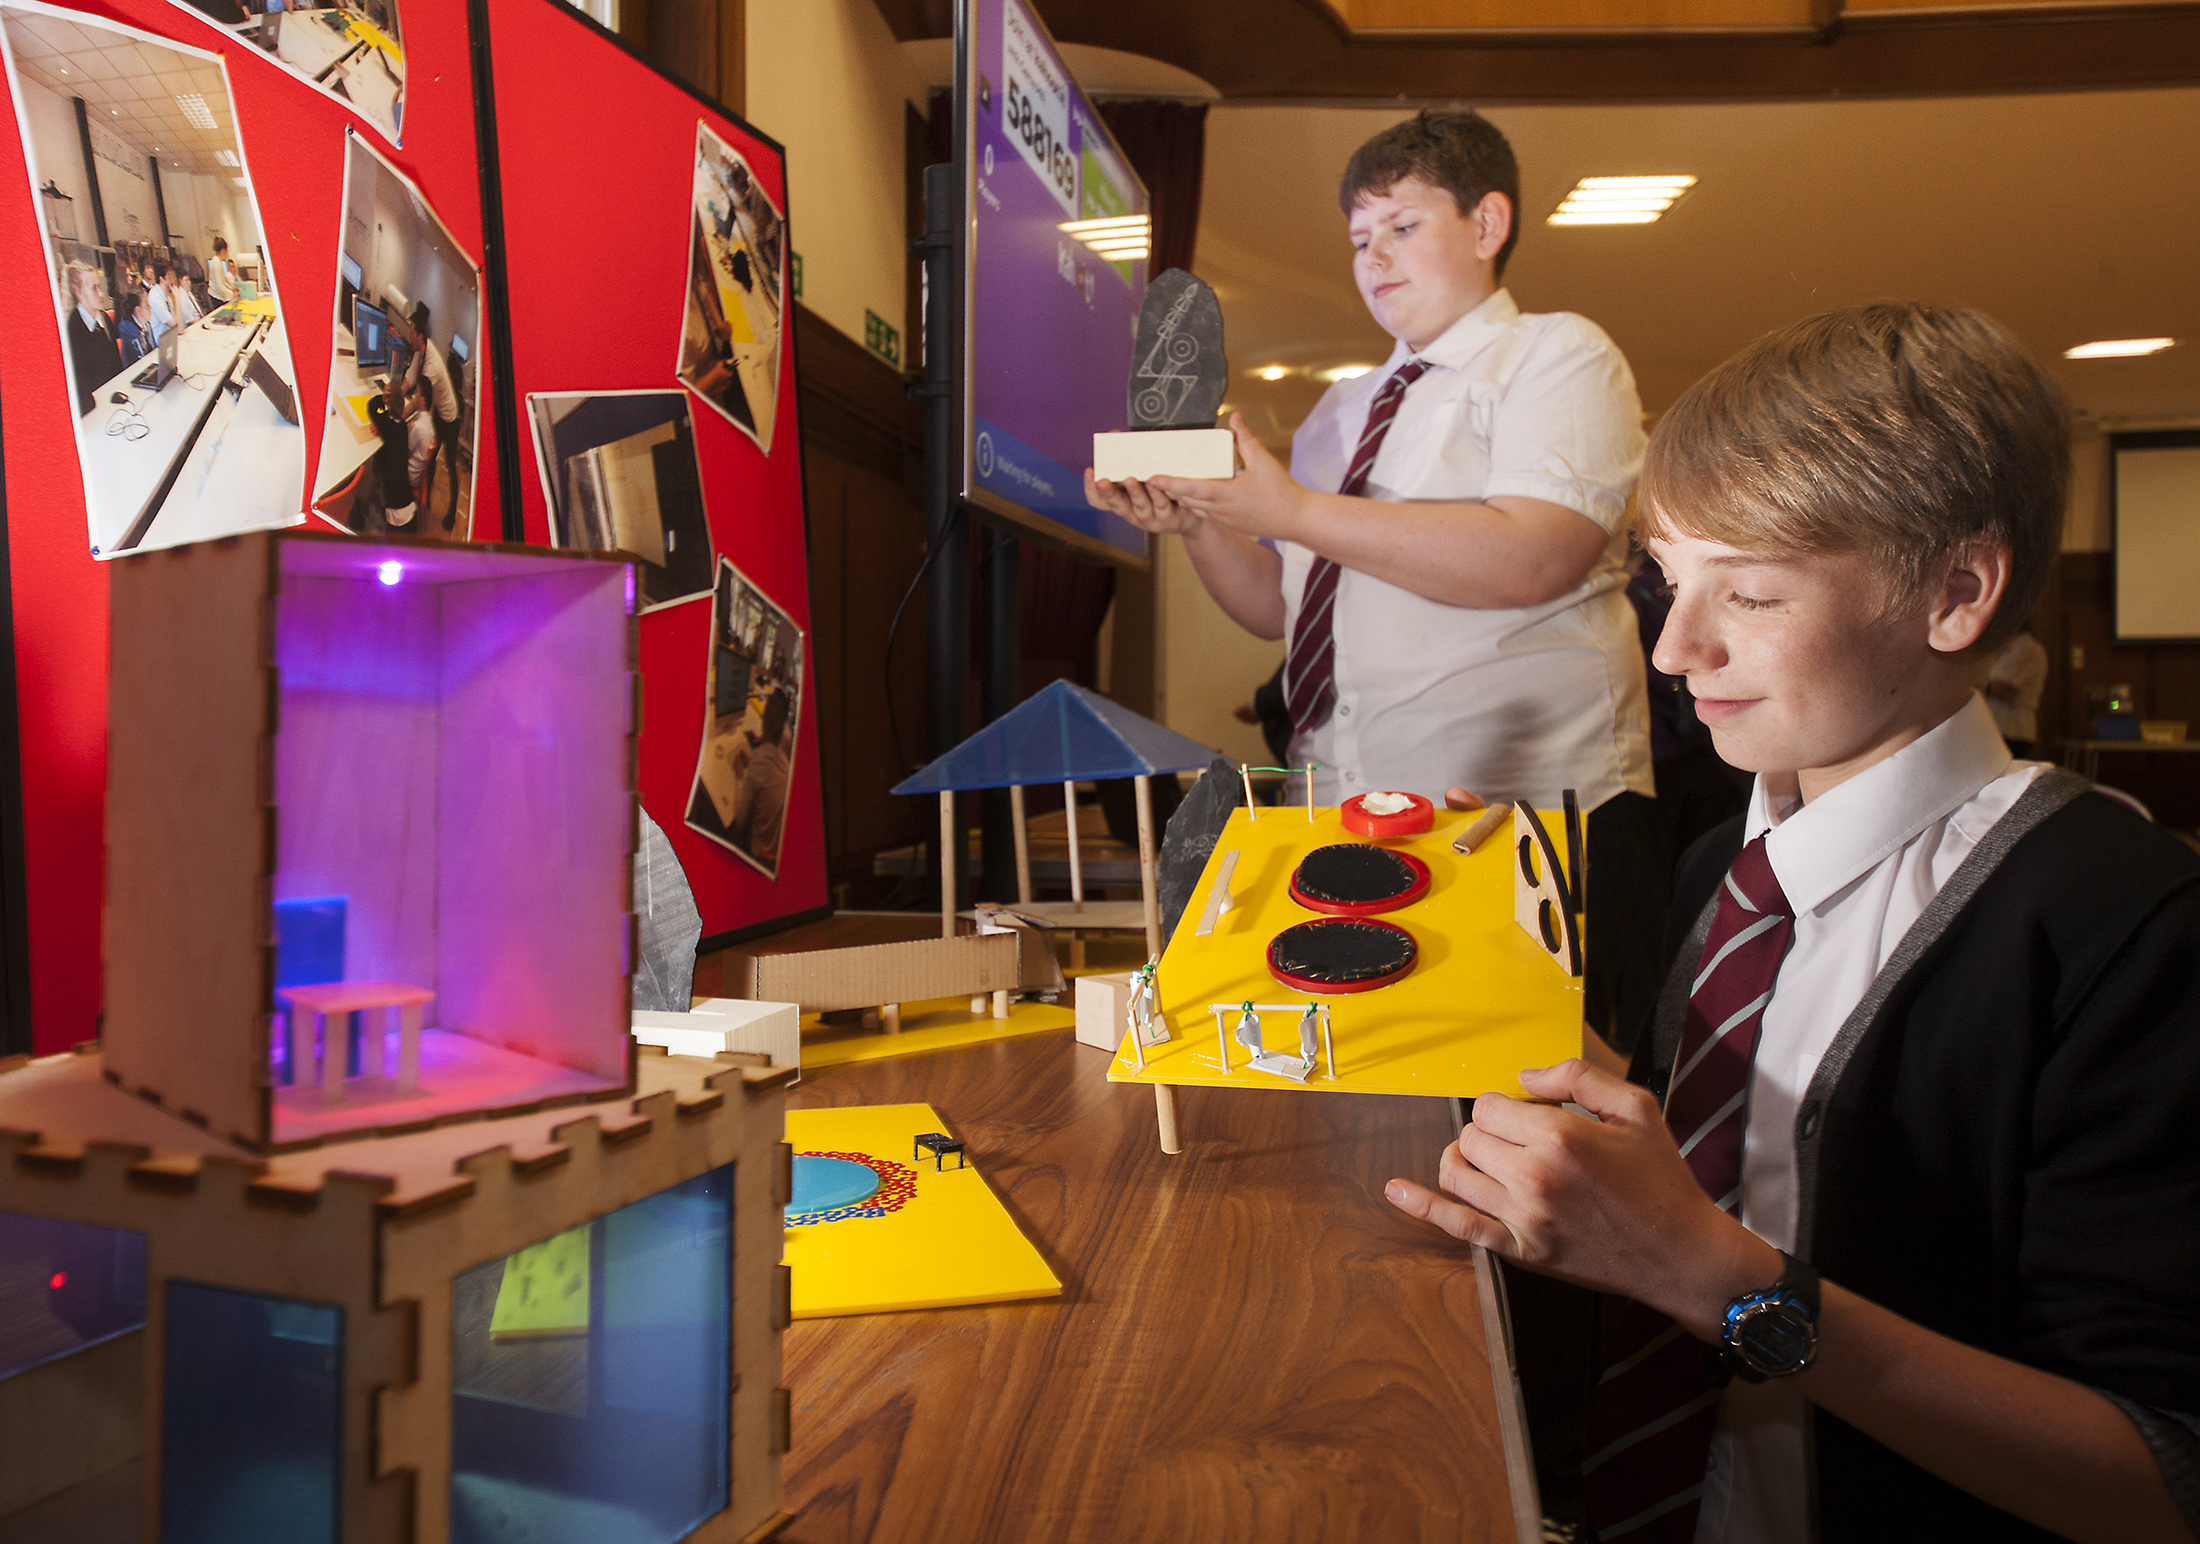 Forfar Academy S3 pupils Daniel Gough (left) and Robbie Stout with pupil models showing pupil designs for outdoor spaces.